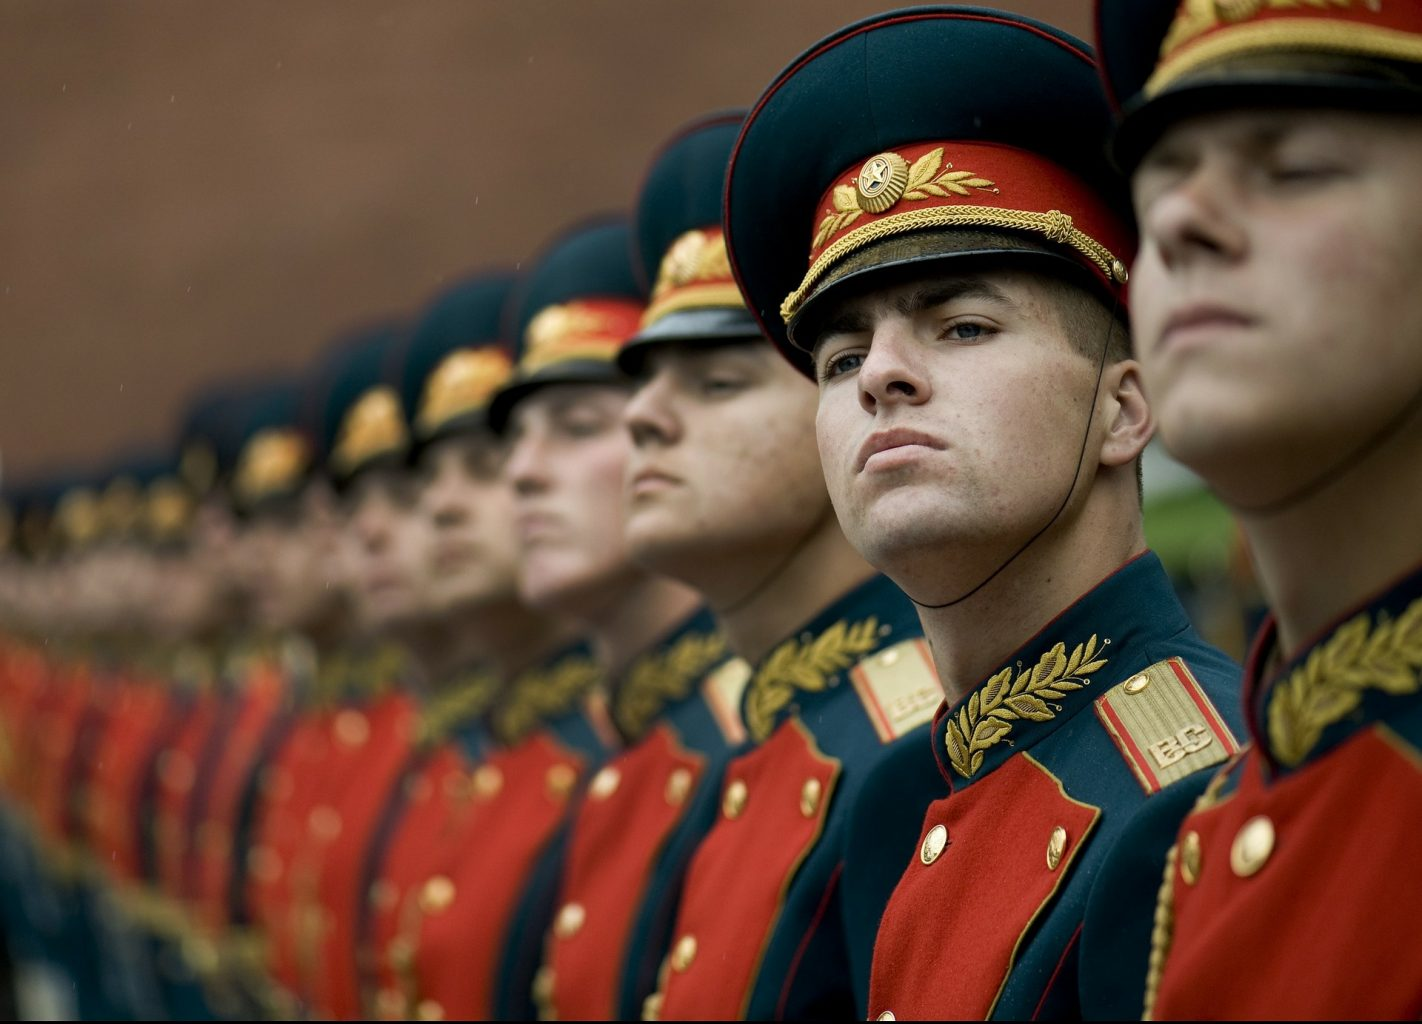 A Critique of Hybrid Warfare in the Light of Russia-Ukraine Crisis and Military Strategy